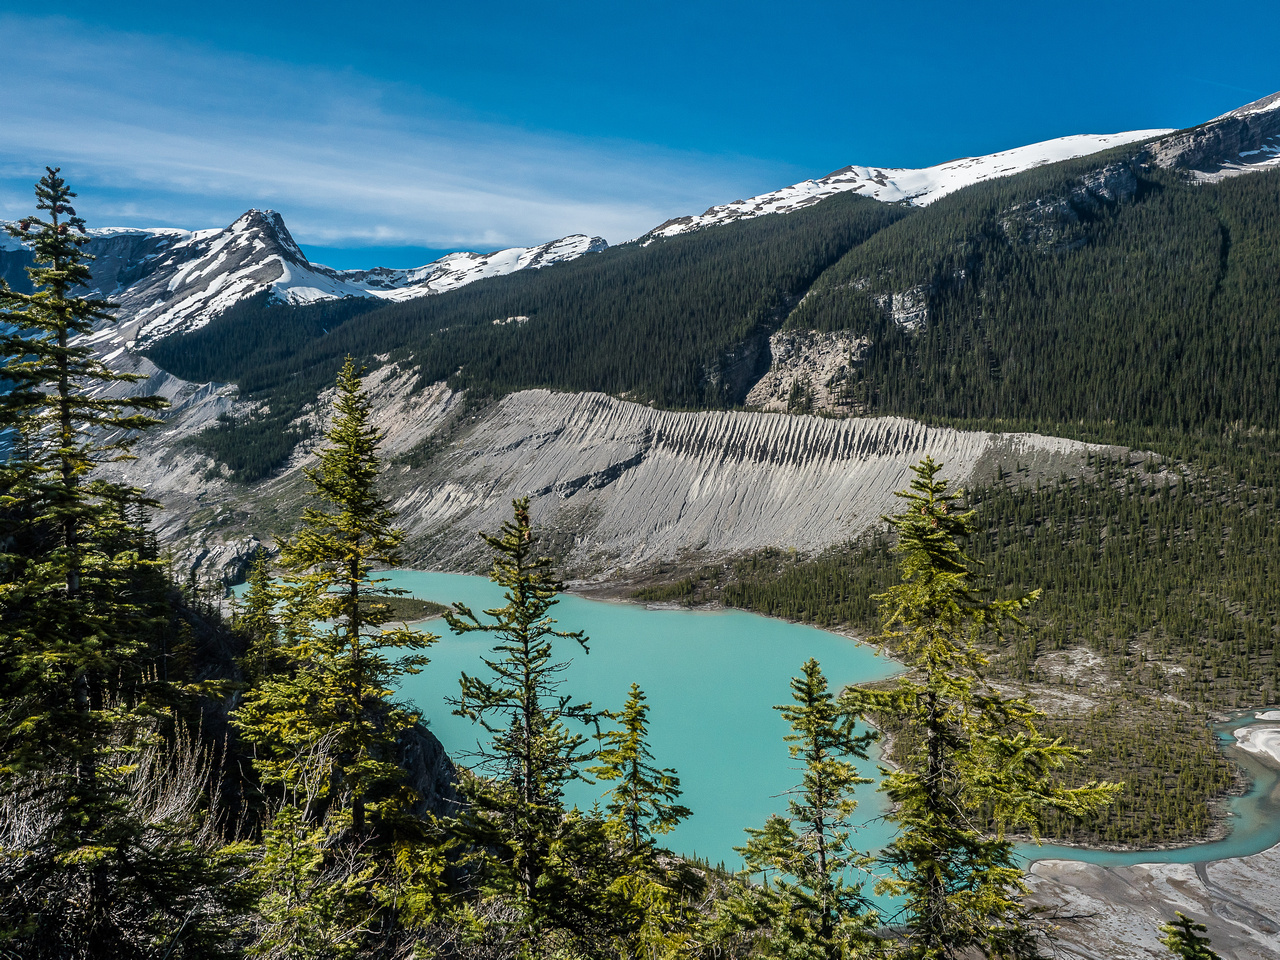 A gorgeous view over Lyell Lake showing the moraine that is used to access the Lyell Meadows and Icefield.